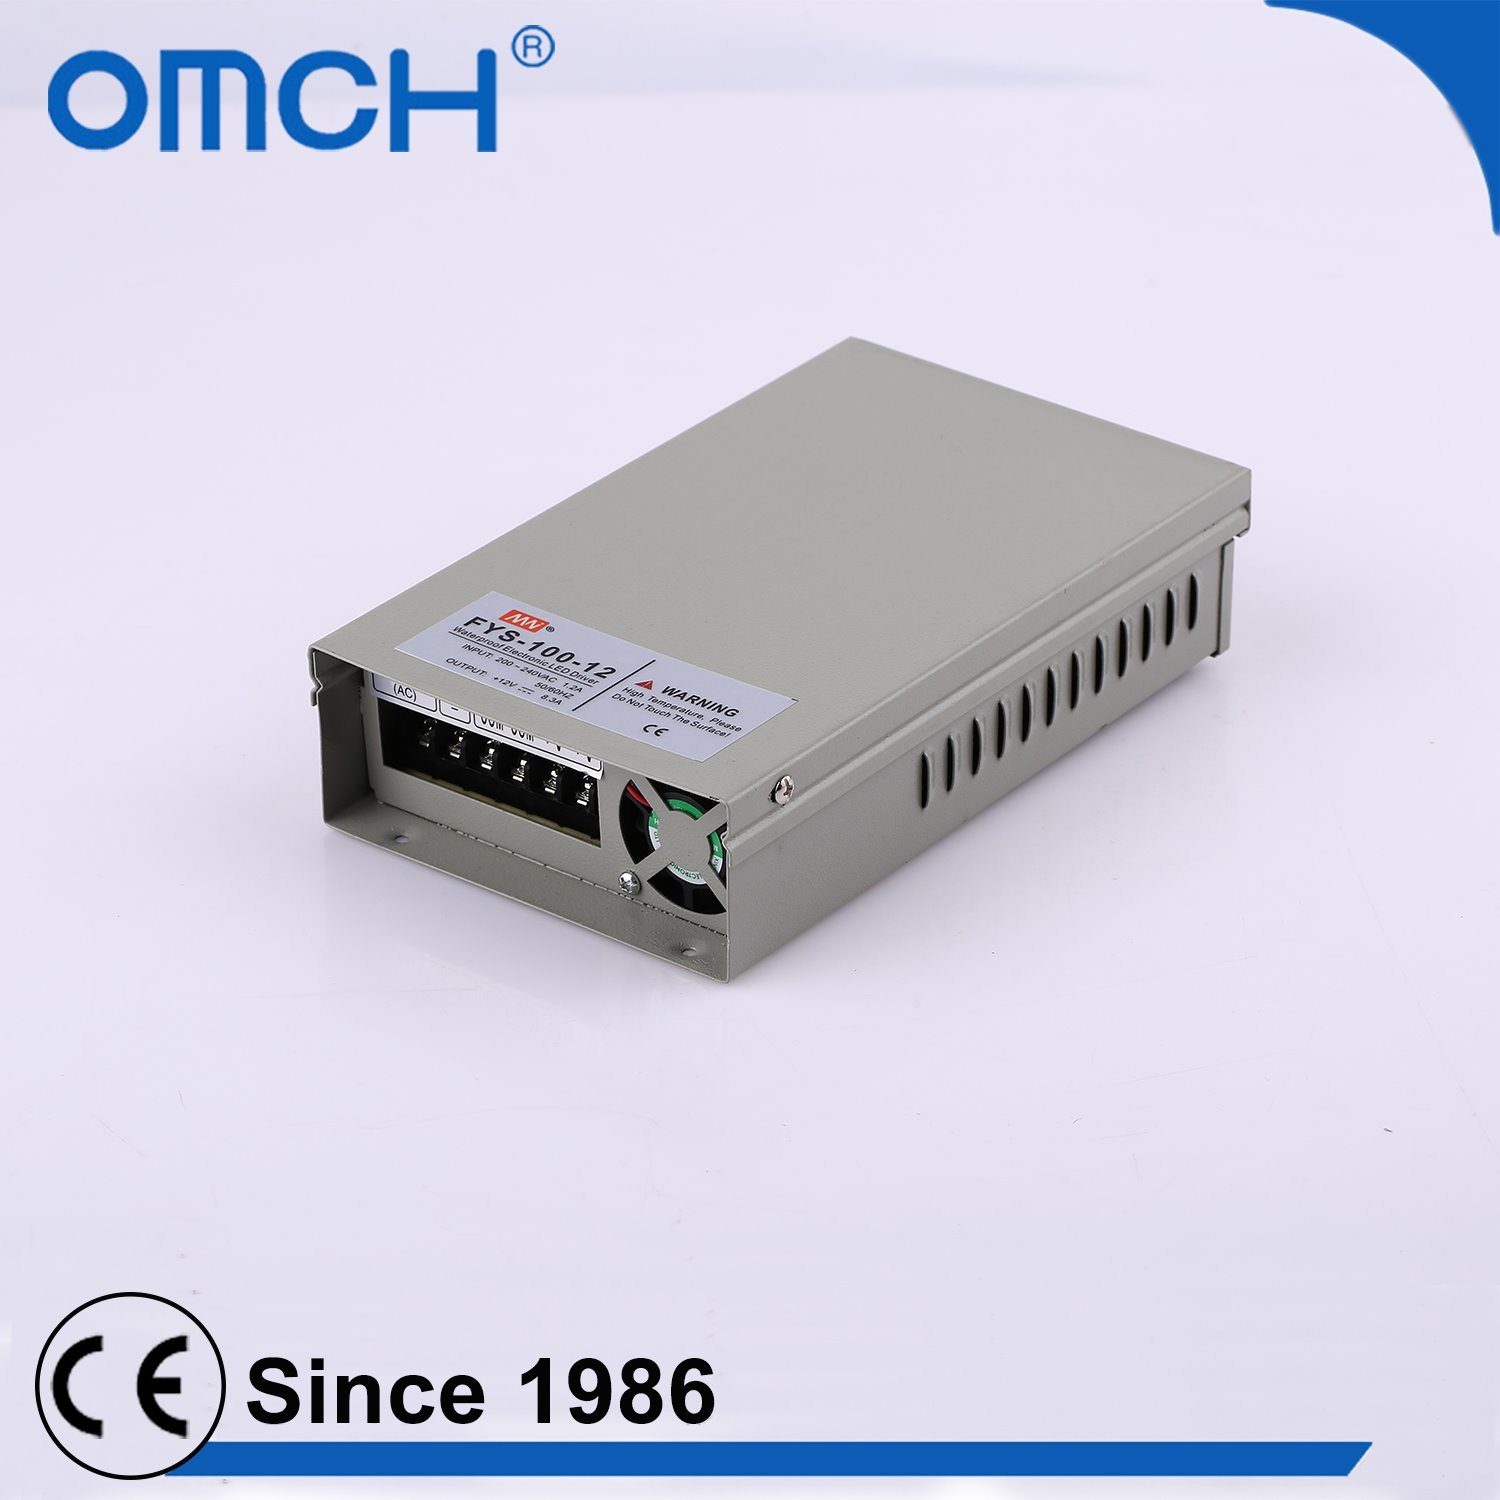 China 50w Waterproof Led Power Supply With Short Circuit And Series Protection Overload Switching Mode